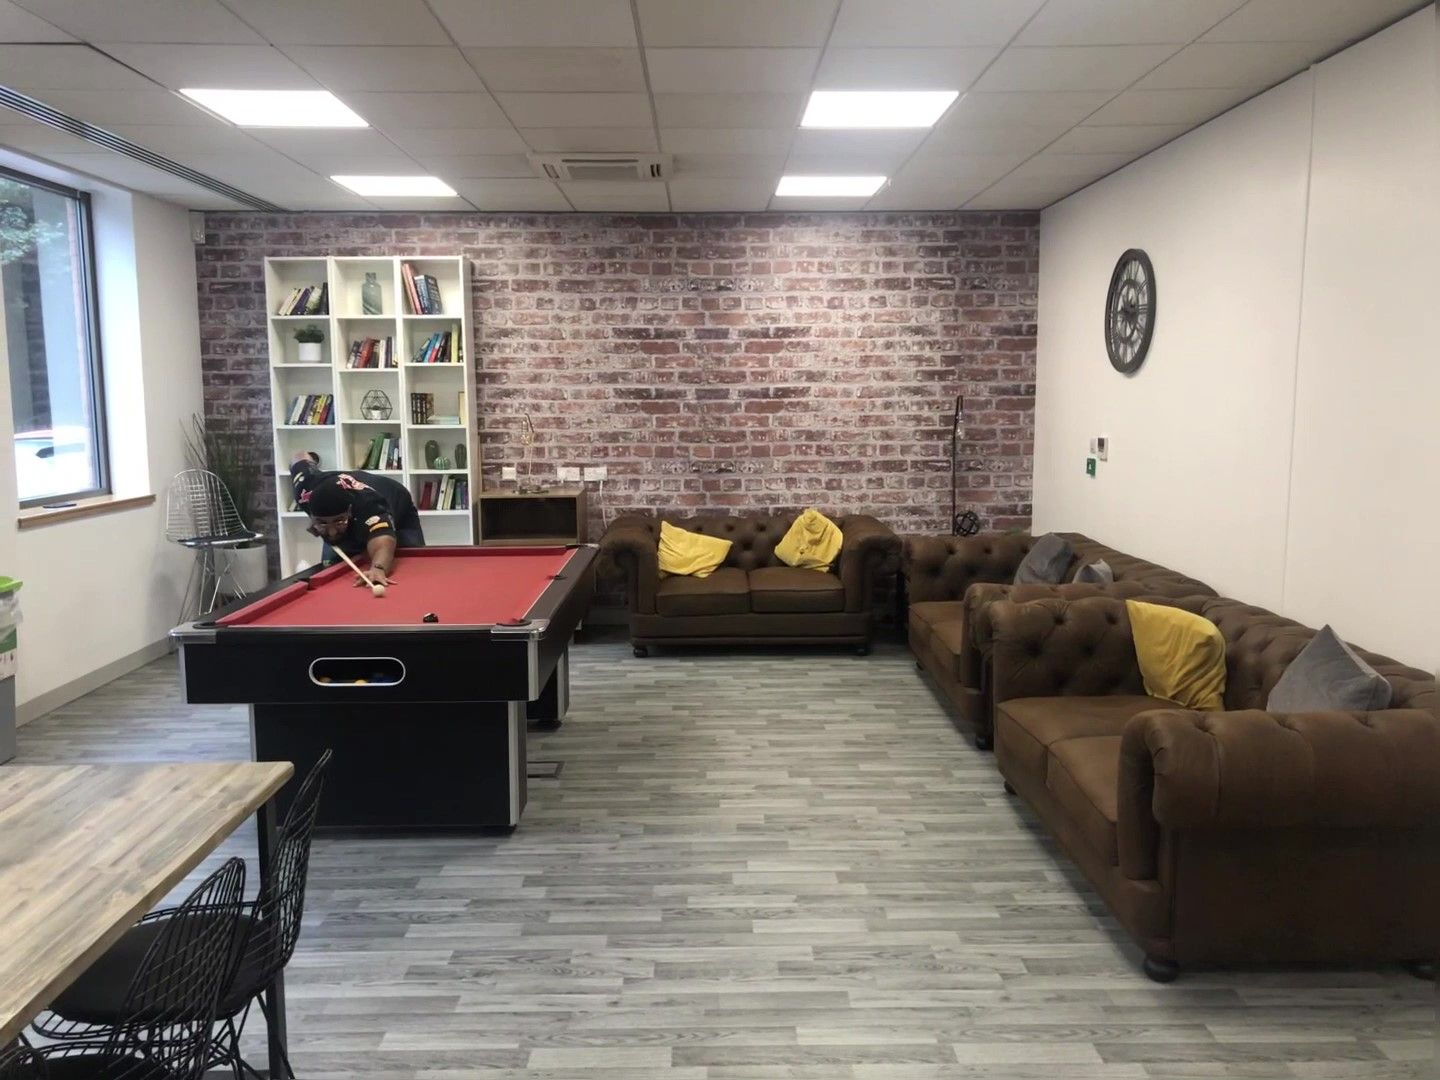 A nice new space for the staff at Big Word to come and relax.